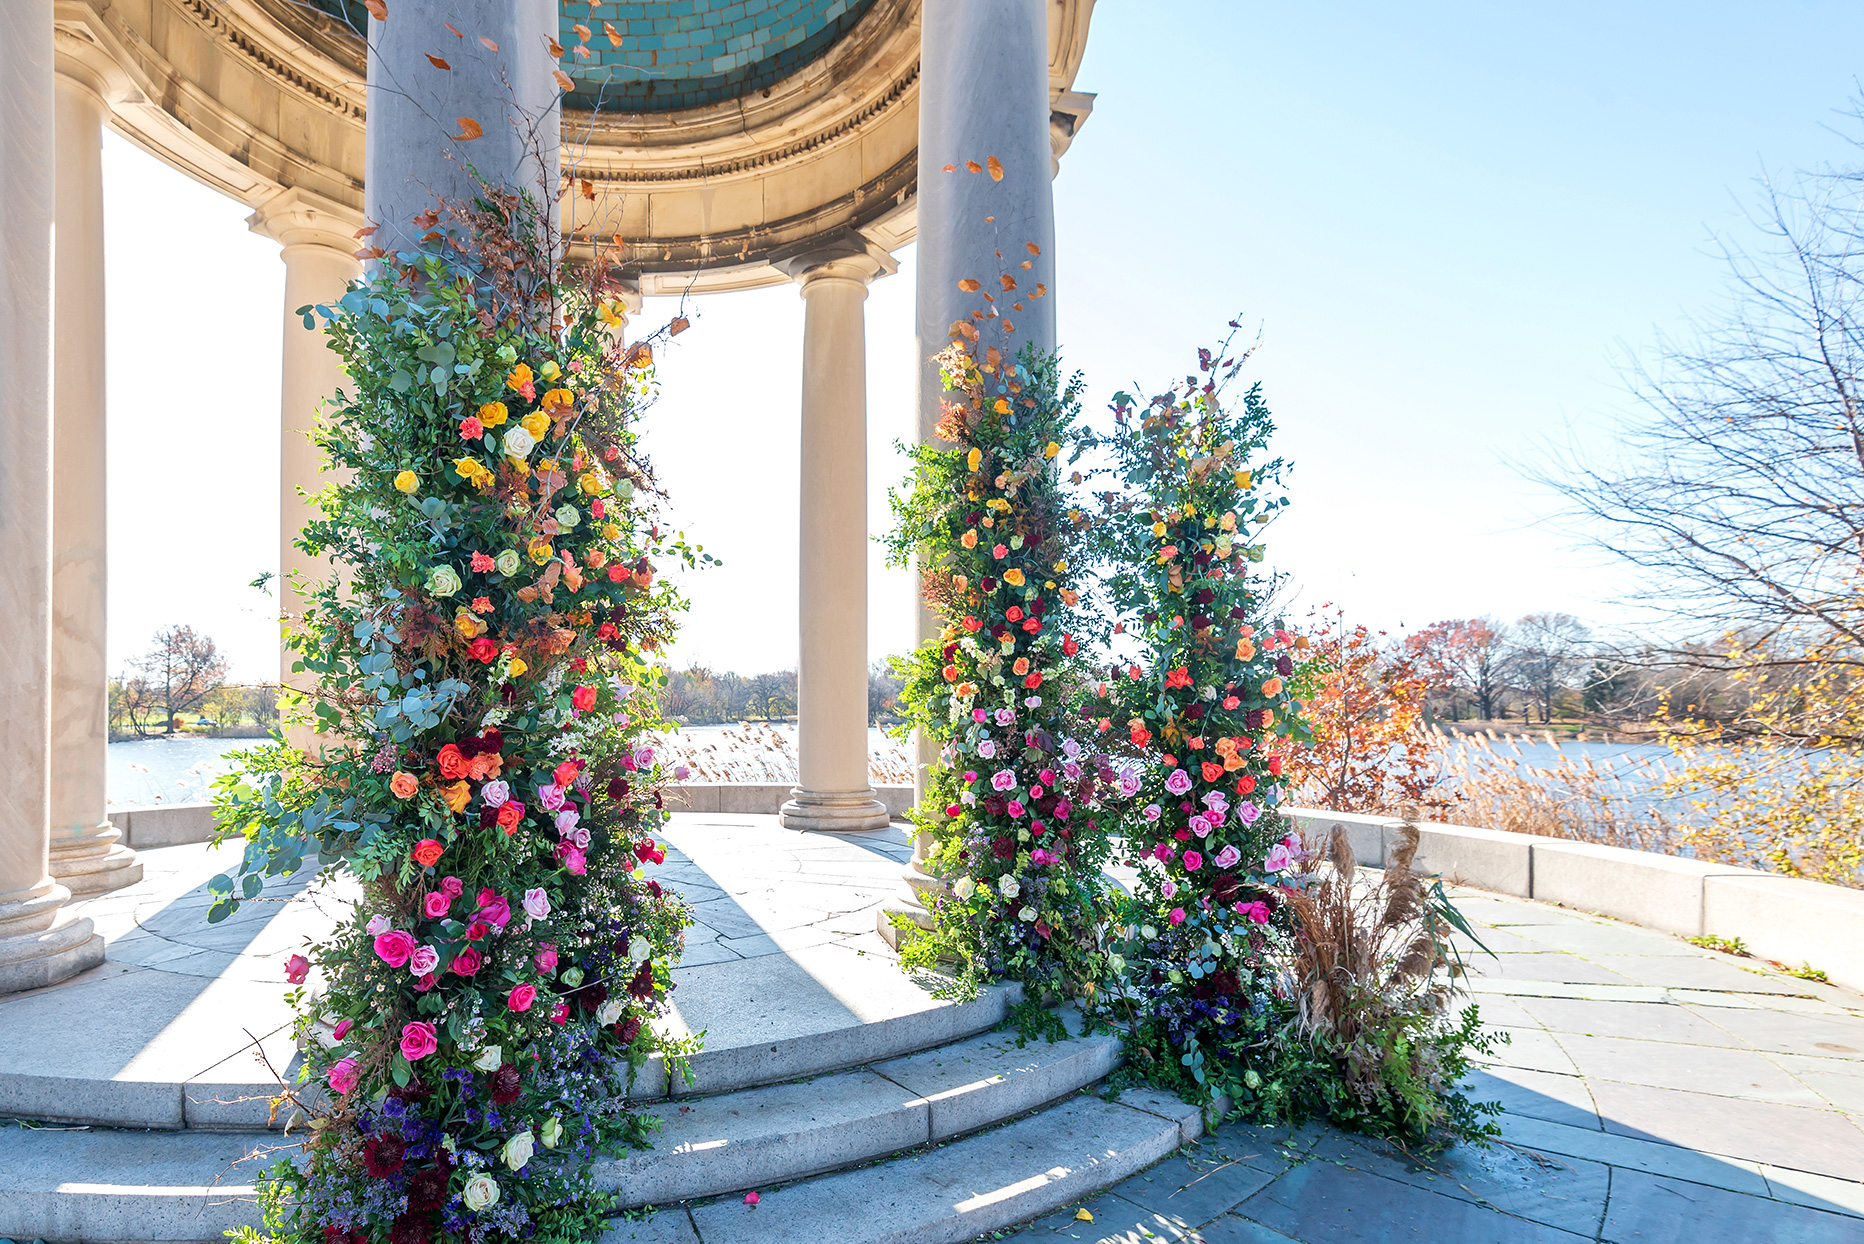 flowers decorate columns in visual for outdoor flower show in June 2021